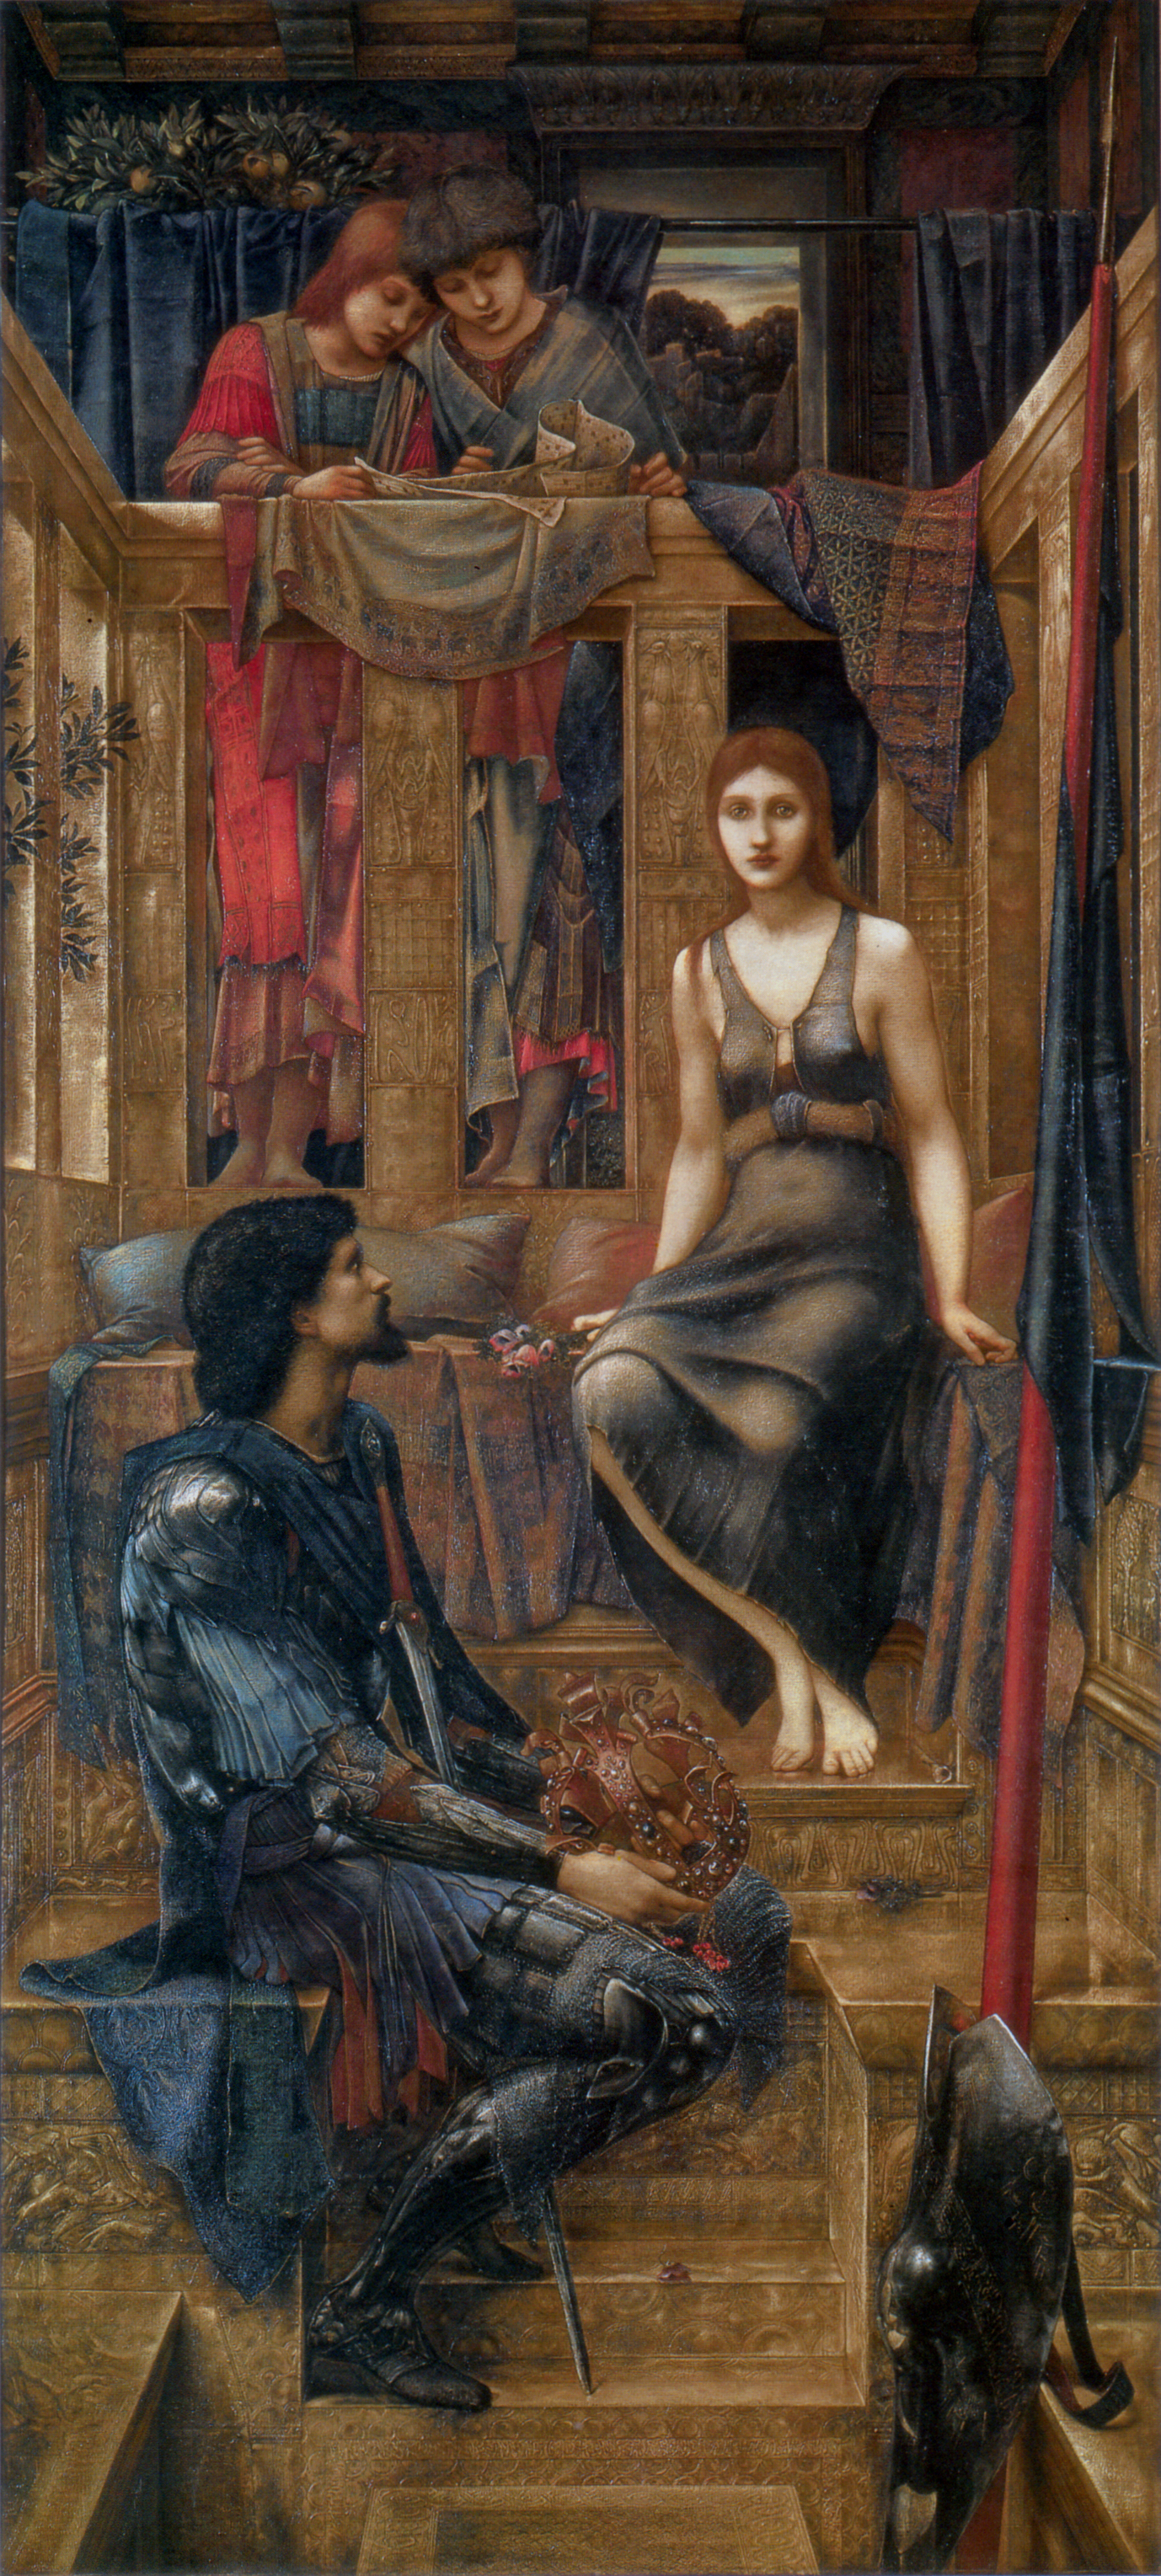 King Cophetua and the maid